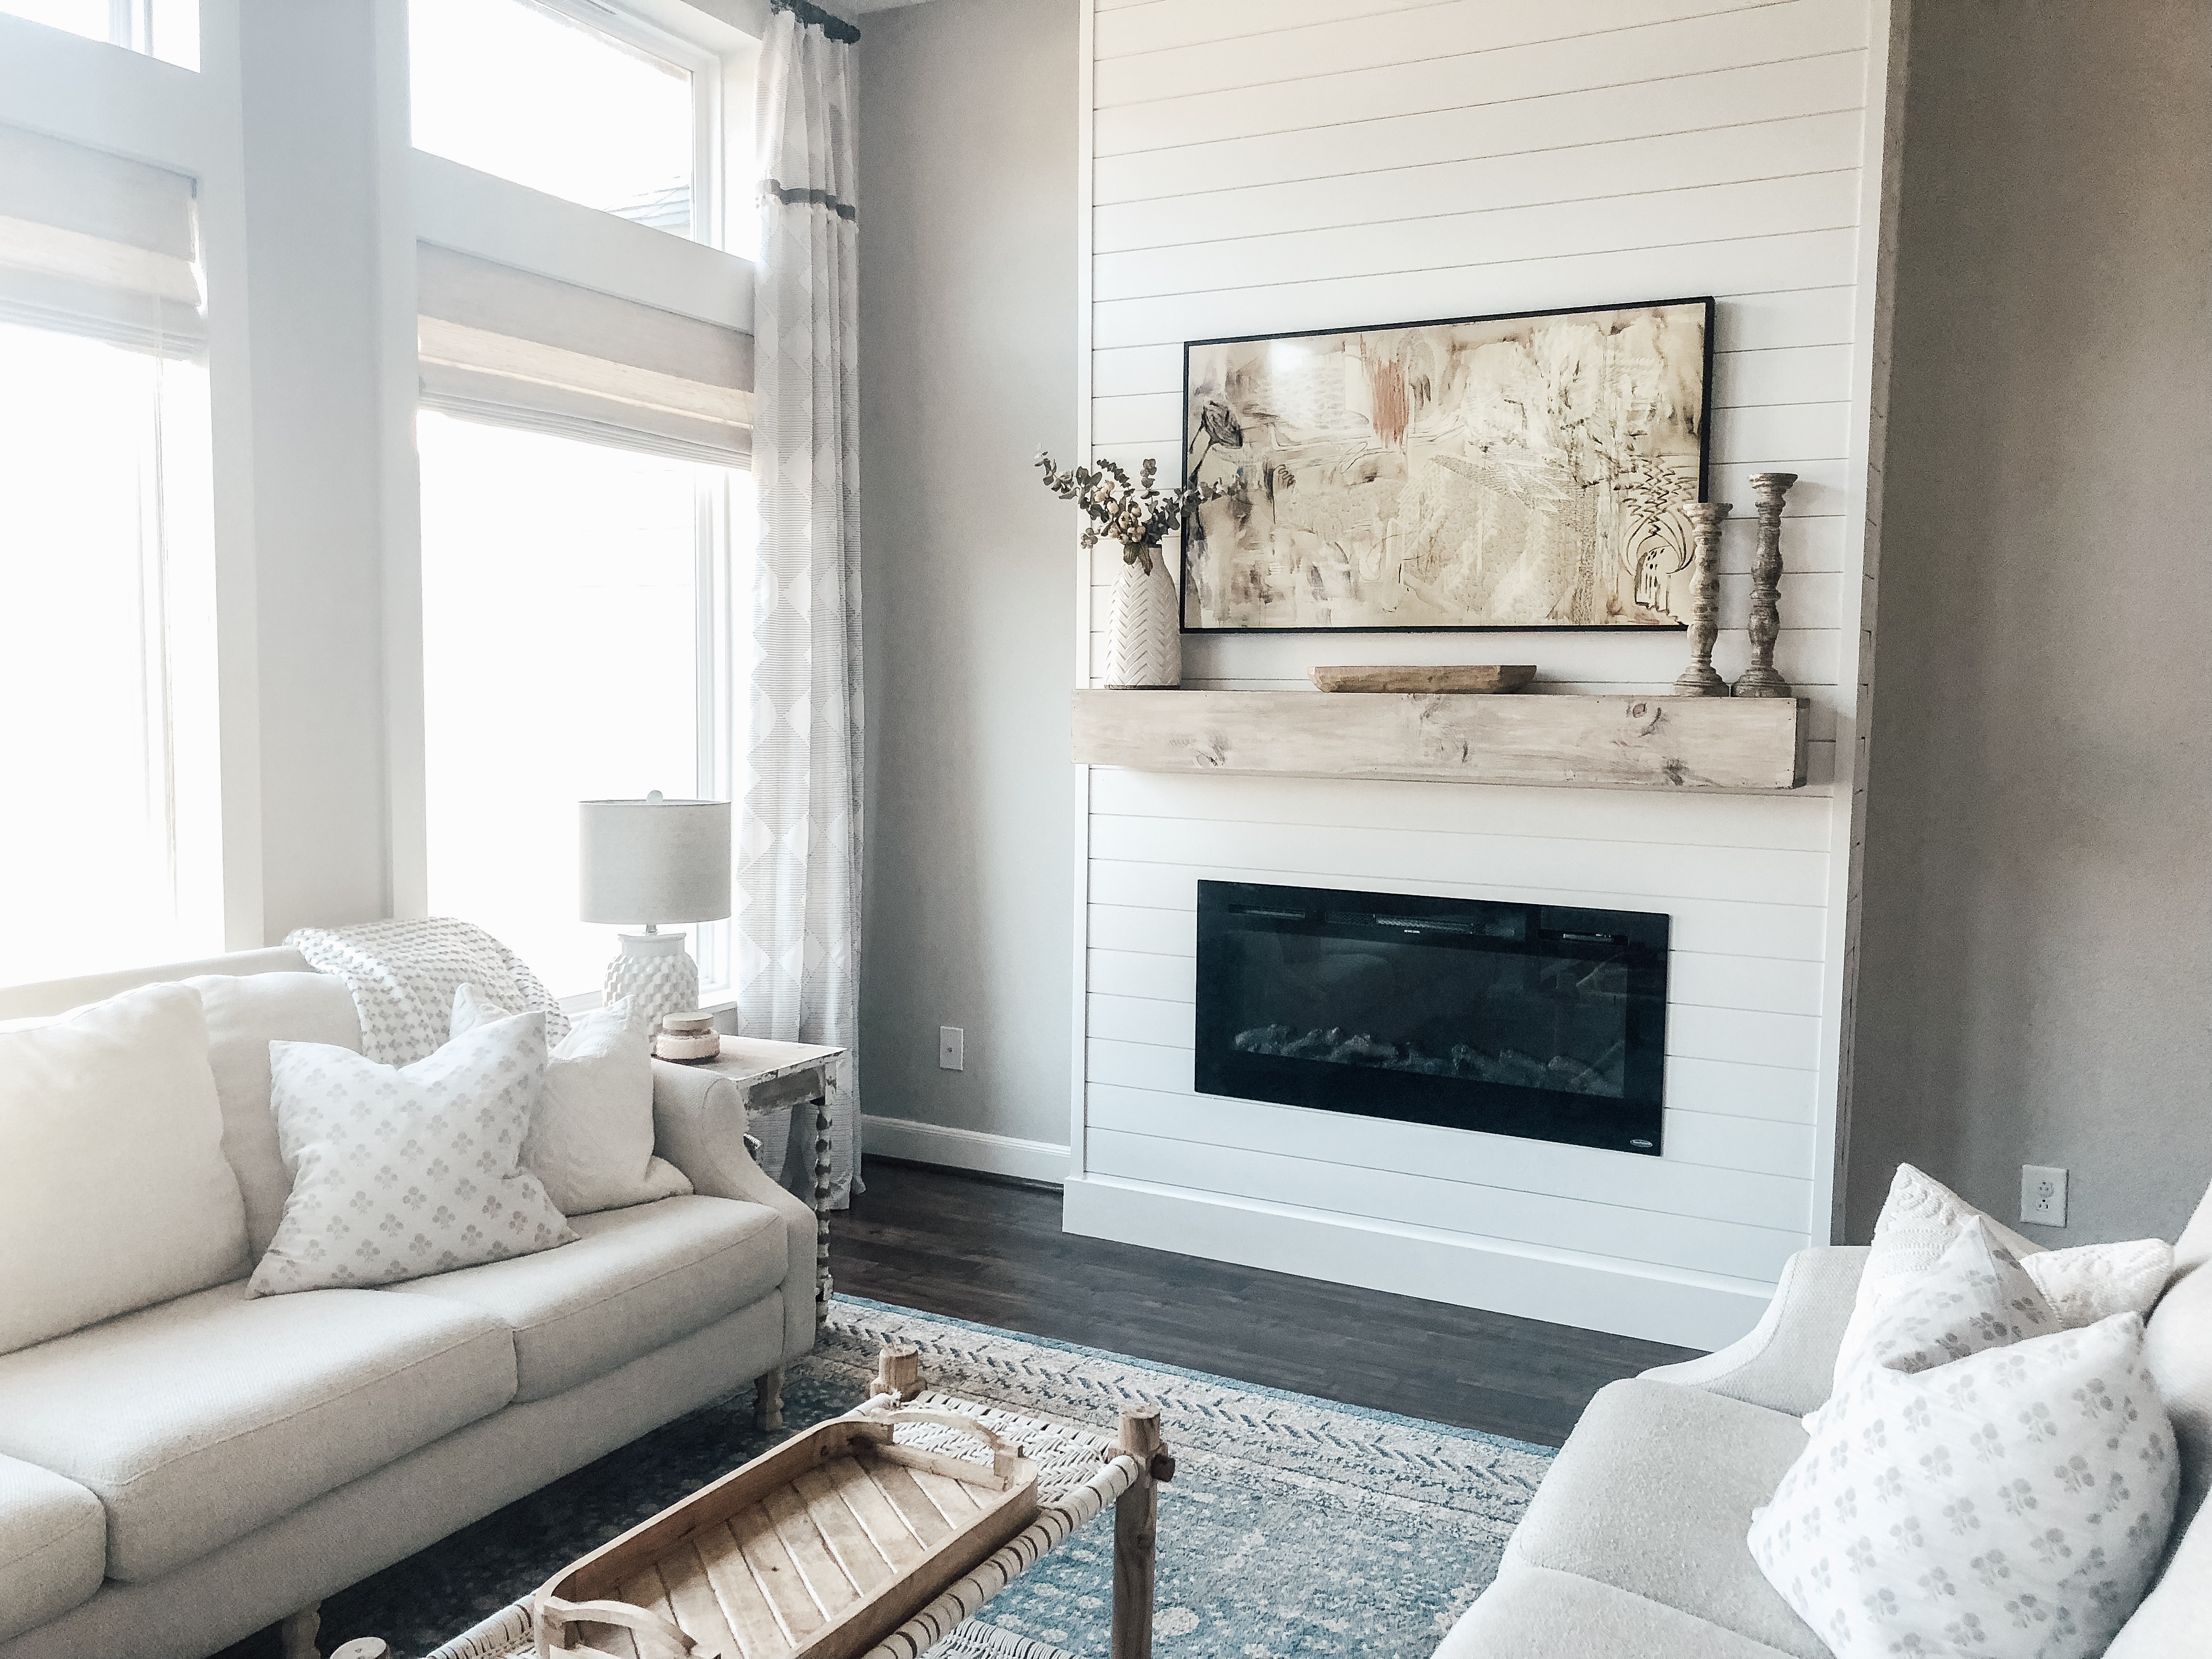 DIY Fireplace and Samsung Frame TV   The Blooming Nest